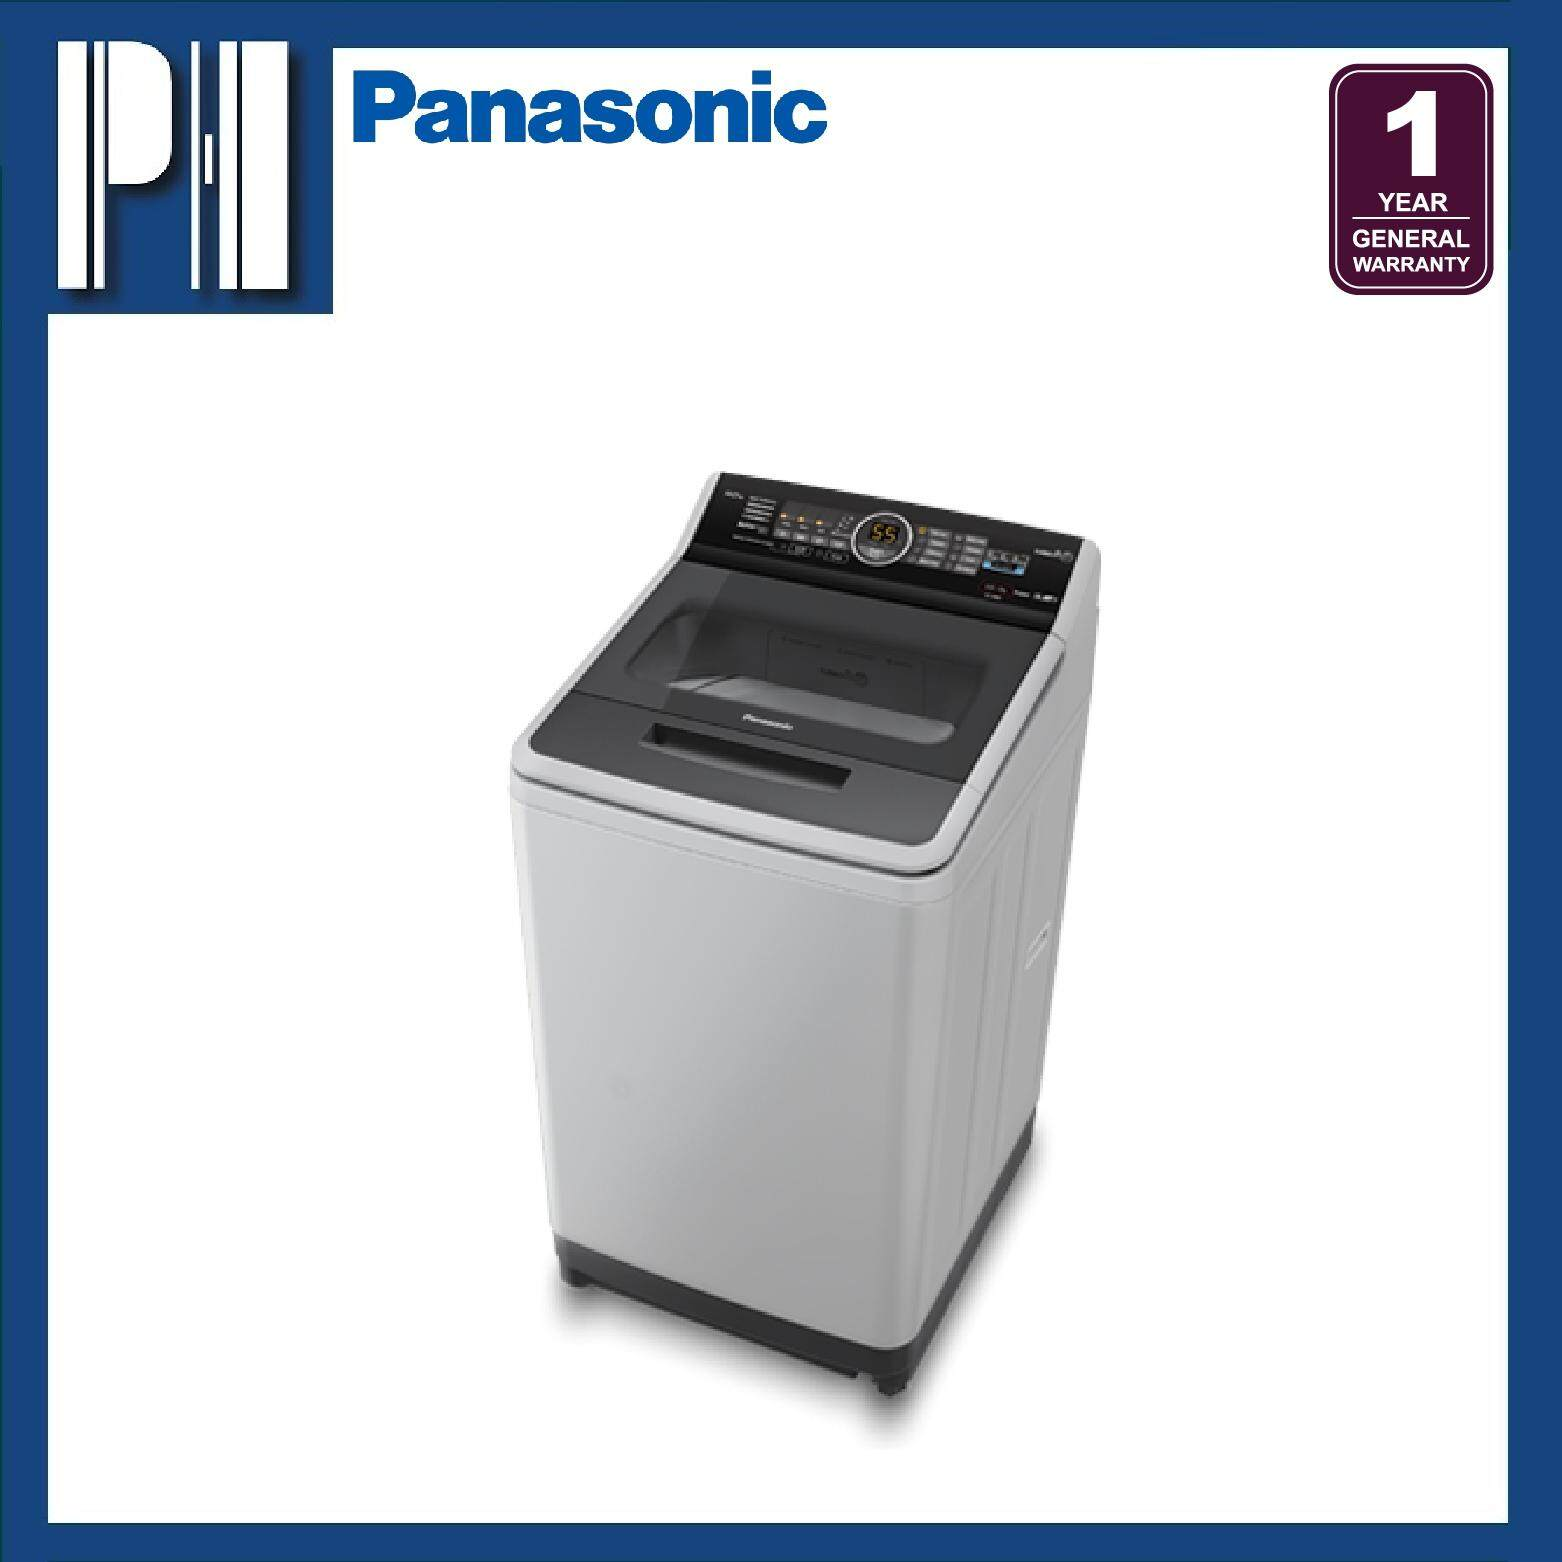 PANASONIC NA-F90A5HRT 9.0KG ActiveFoam System StainMaster Top Load Washer